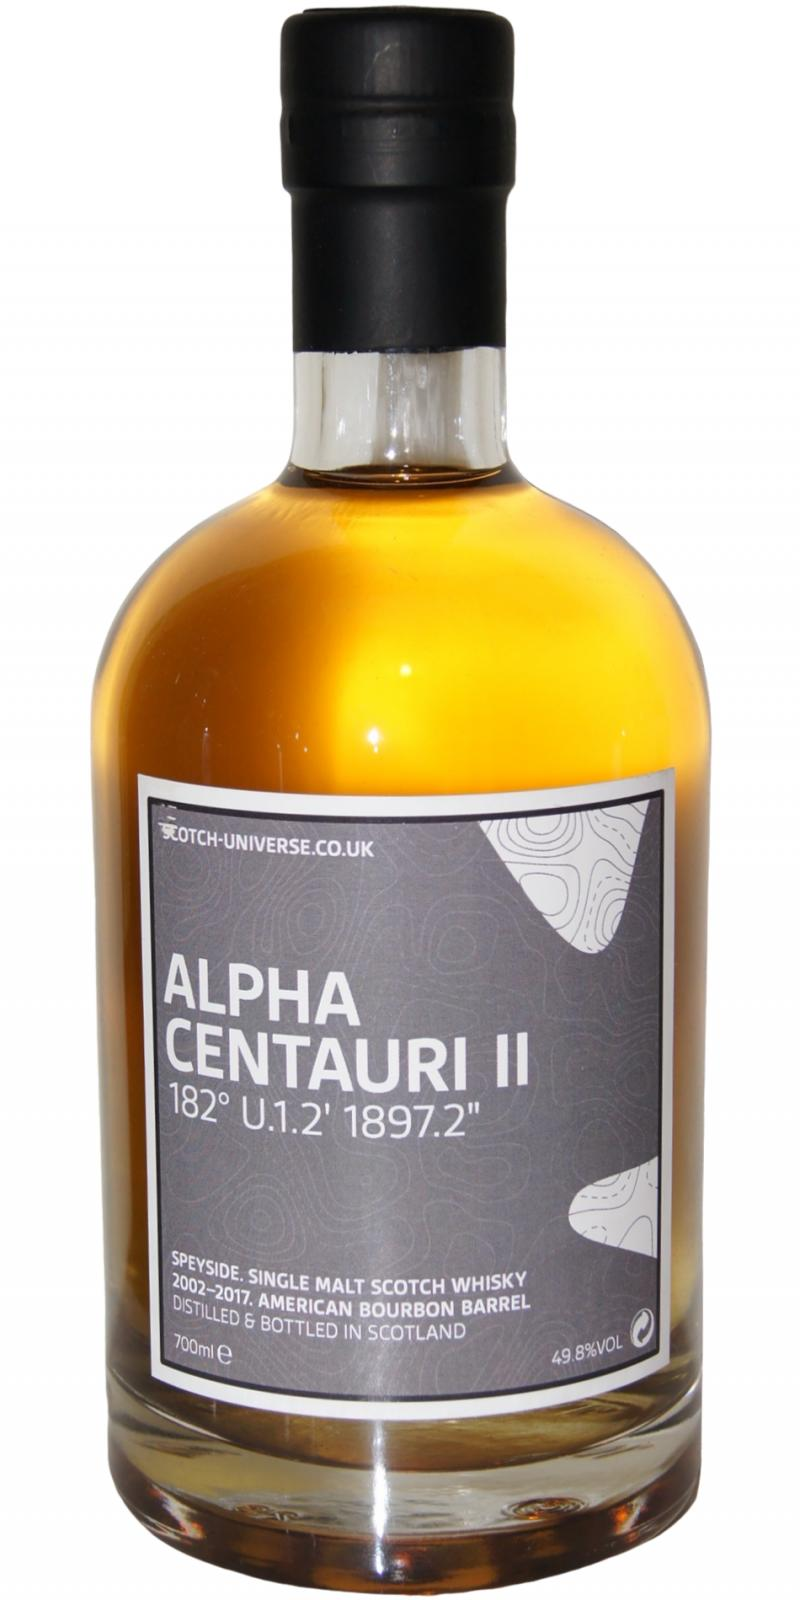 Scotch Universe Alpha Centauri II - 182° U.1.2' 1897.2""